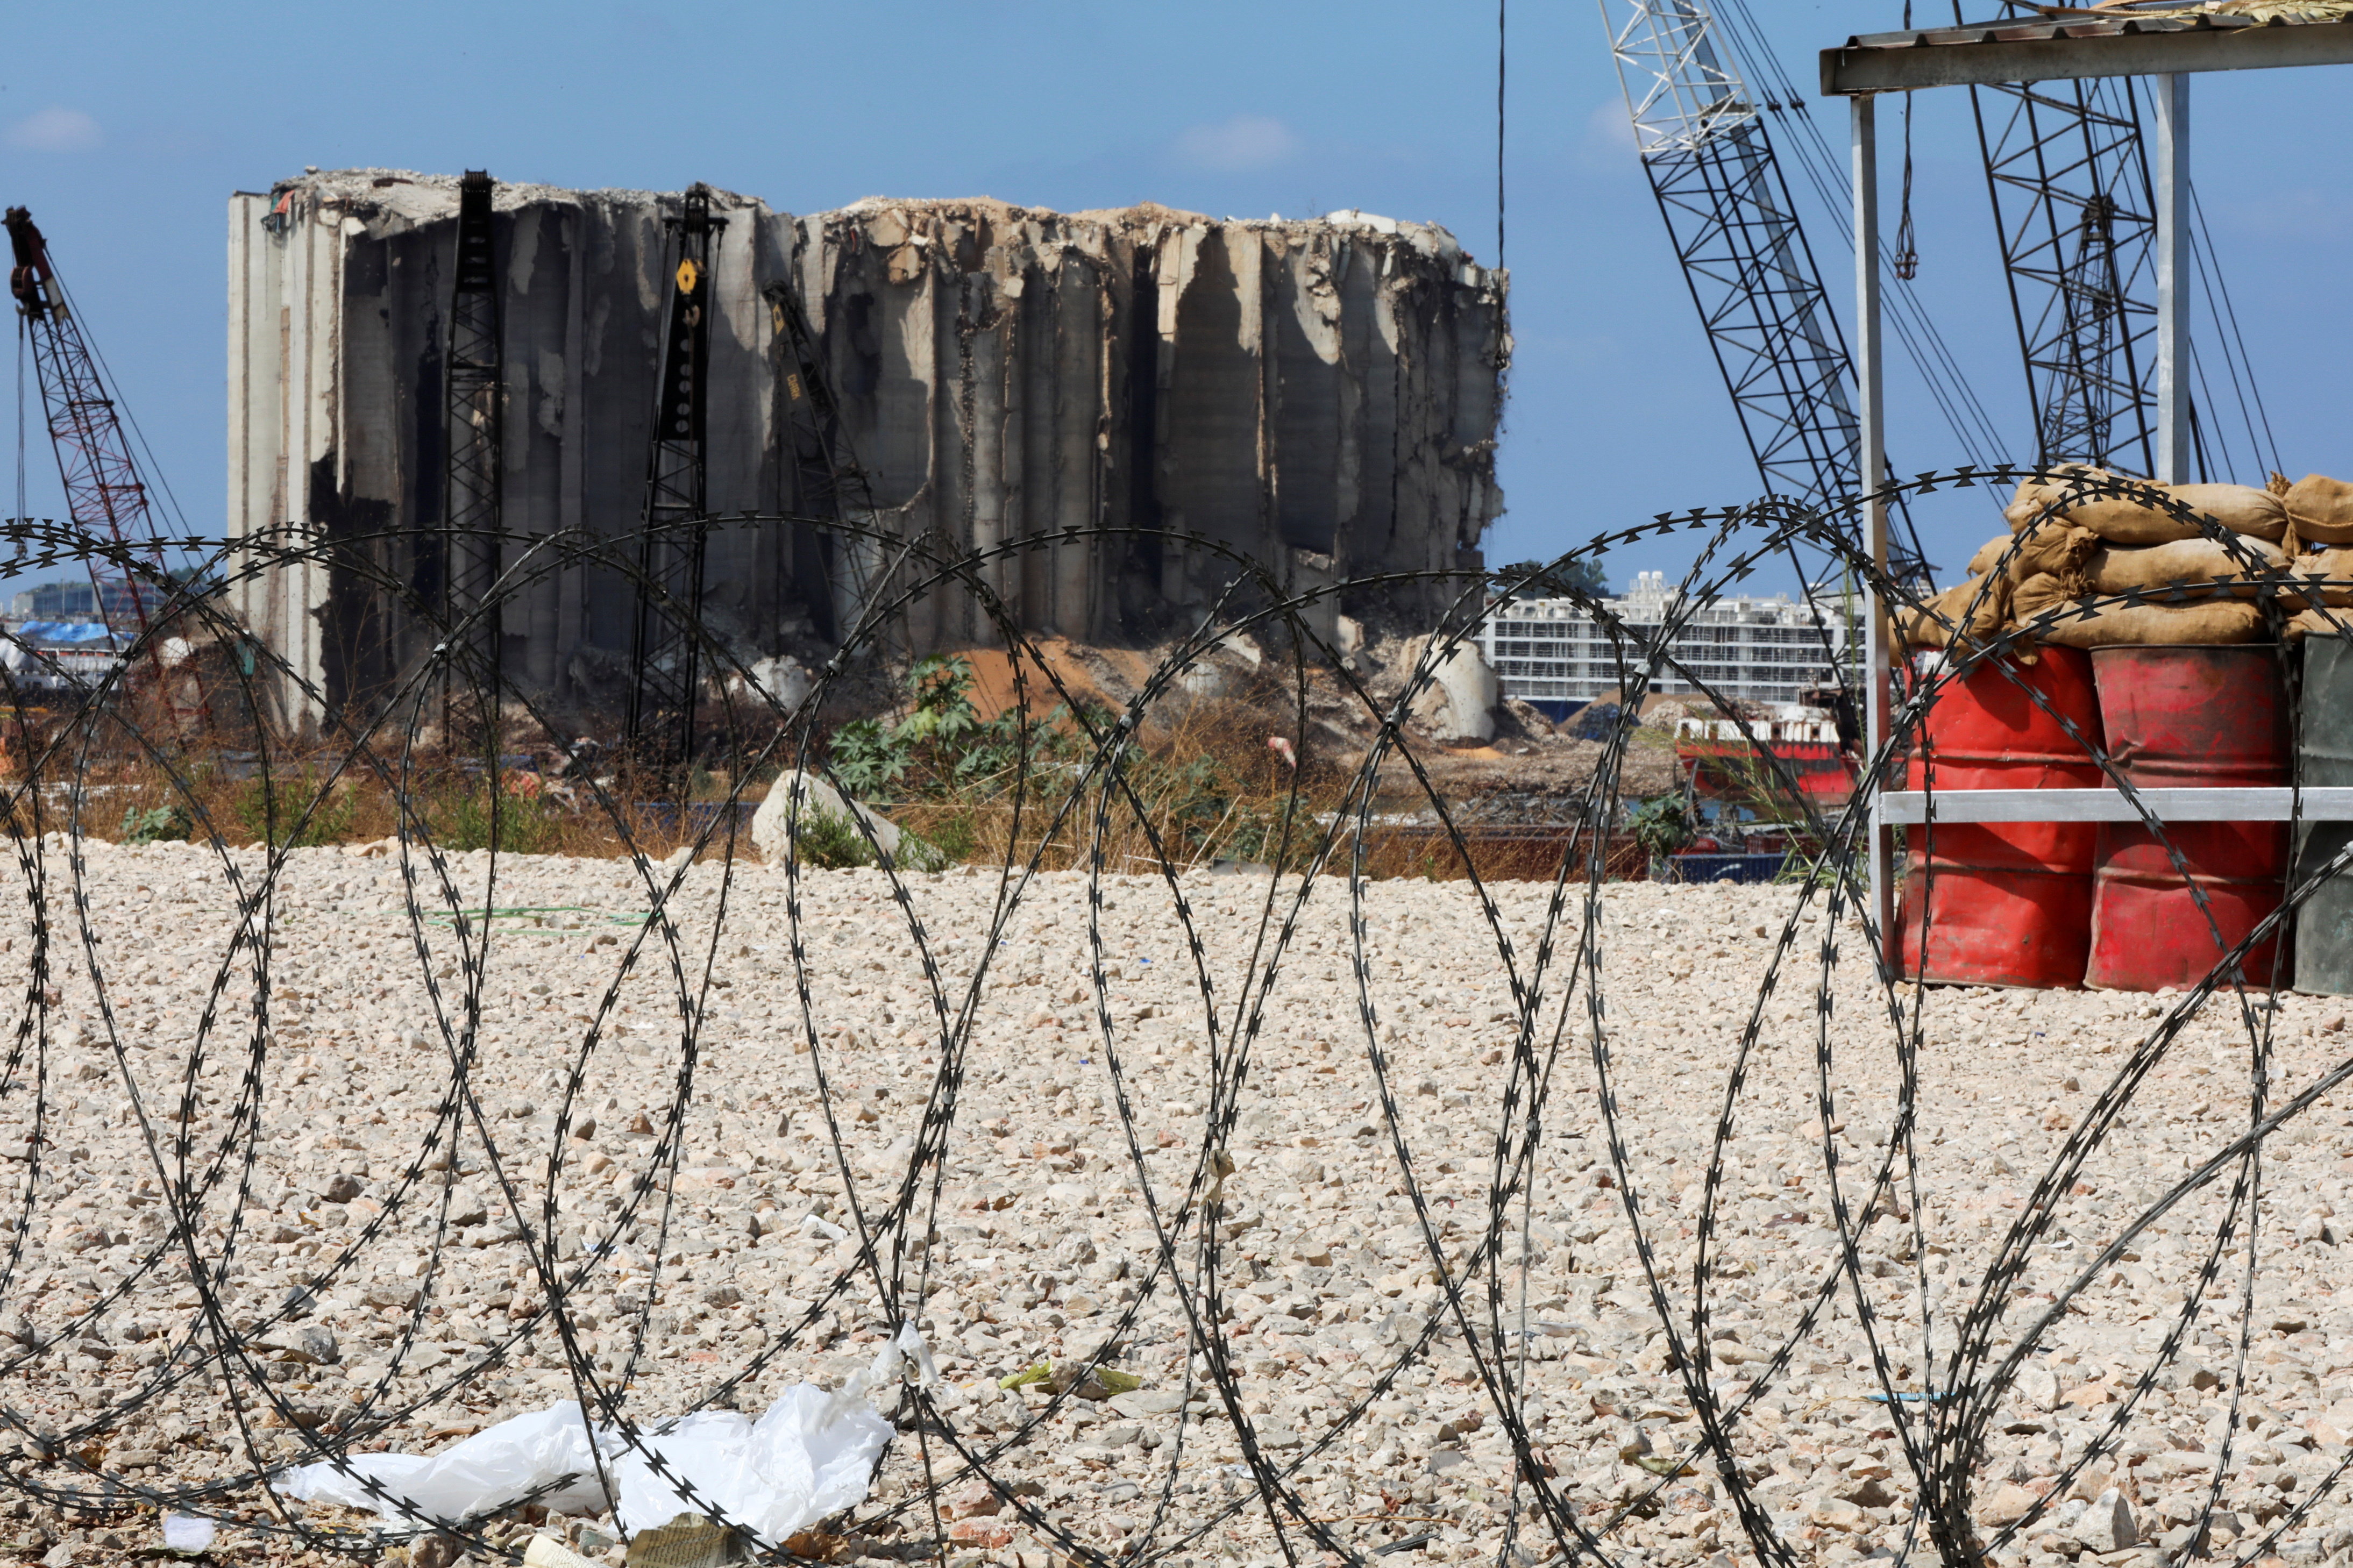 Razor wire is pictured in front of the site of the 2020 Beirut port explosion, Lebanon September 29, 2021. REUTERS/Mohamed Azakir